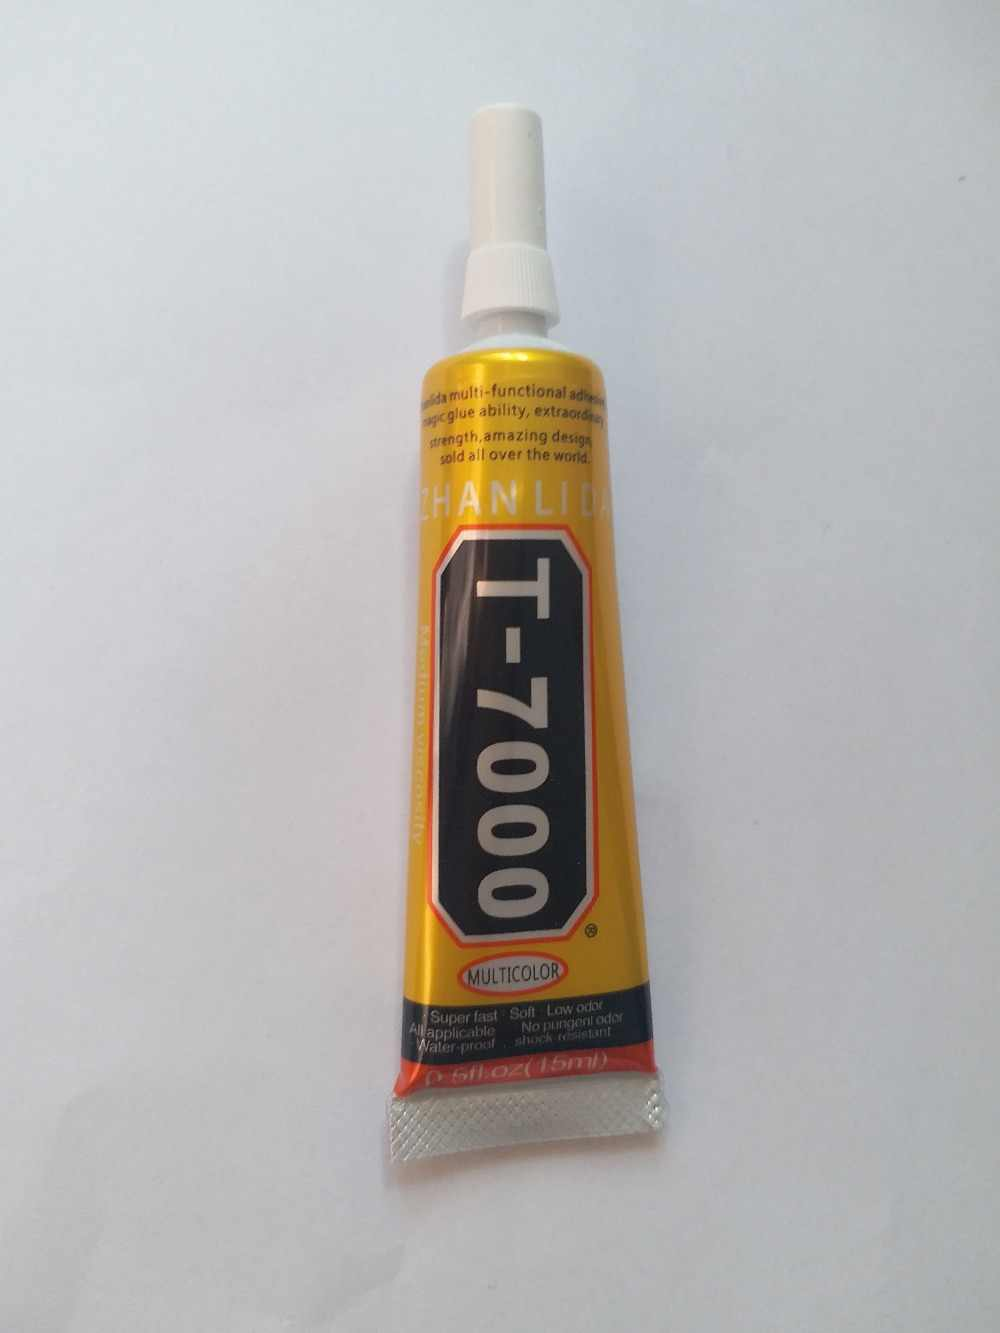 Stronger New T-7000 Glue 15ml Black Super Adhesive Cell Phone Touch Screen Repair Frame Sealant Diy Craft Jewelry Tools T7000